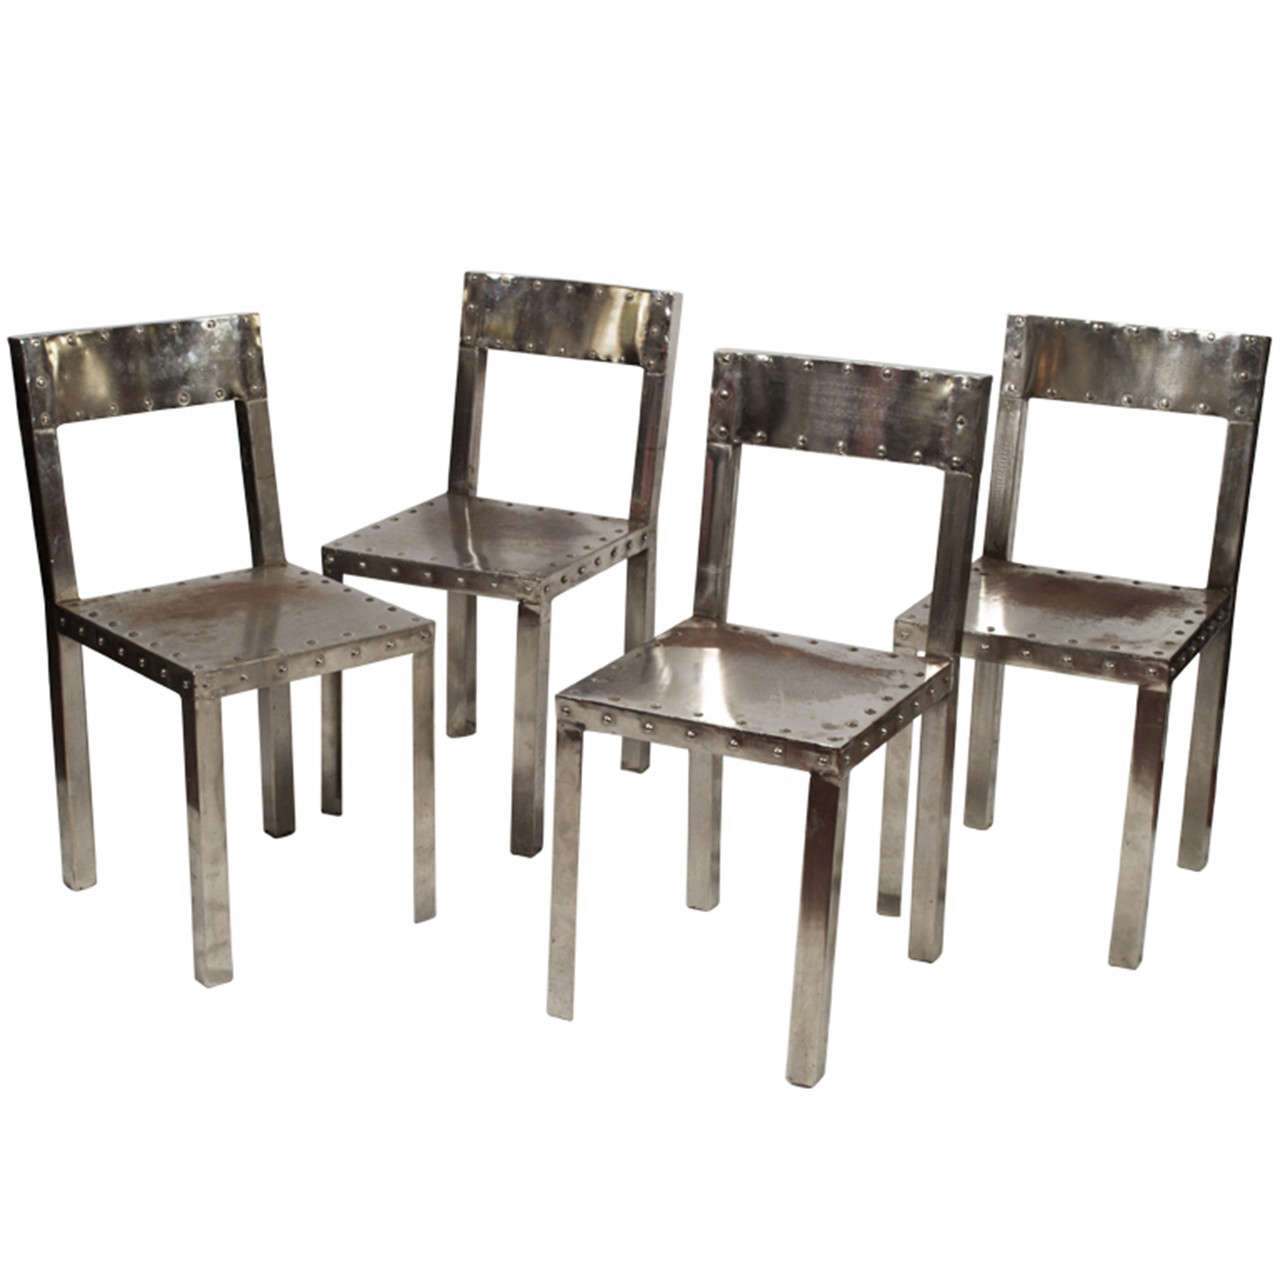 Four Unique Handmade Steel Metal Chairs At 1stdibs